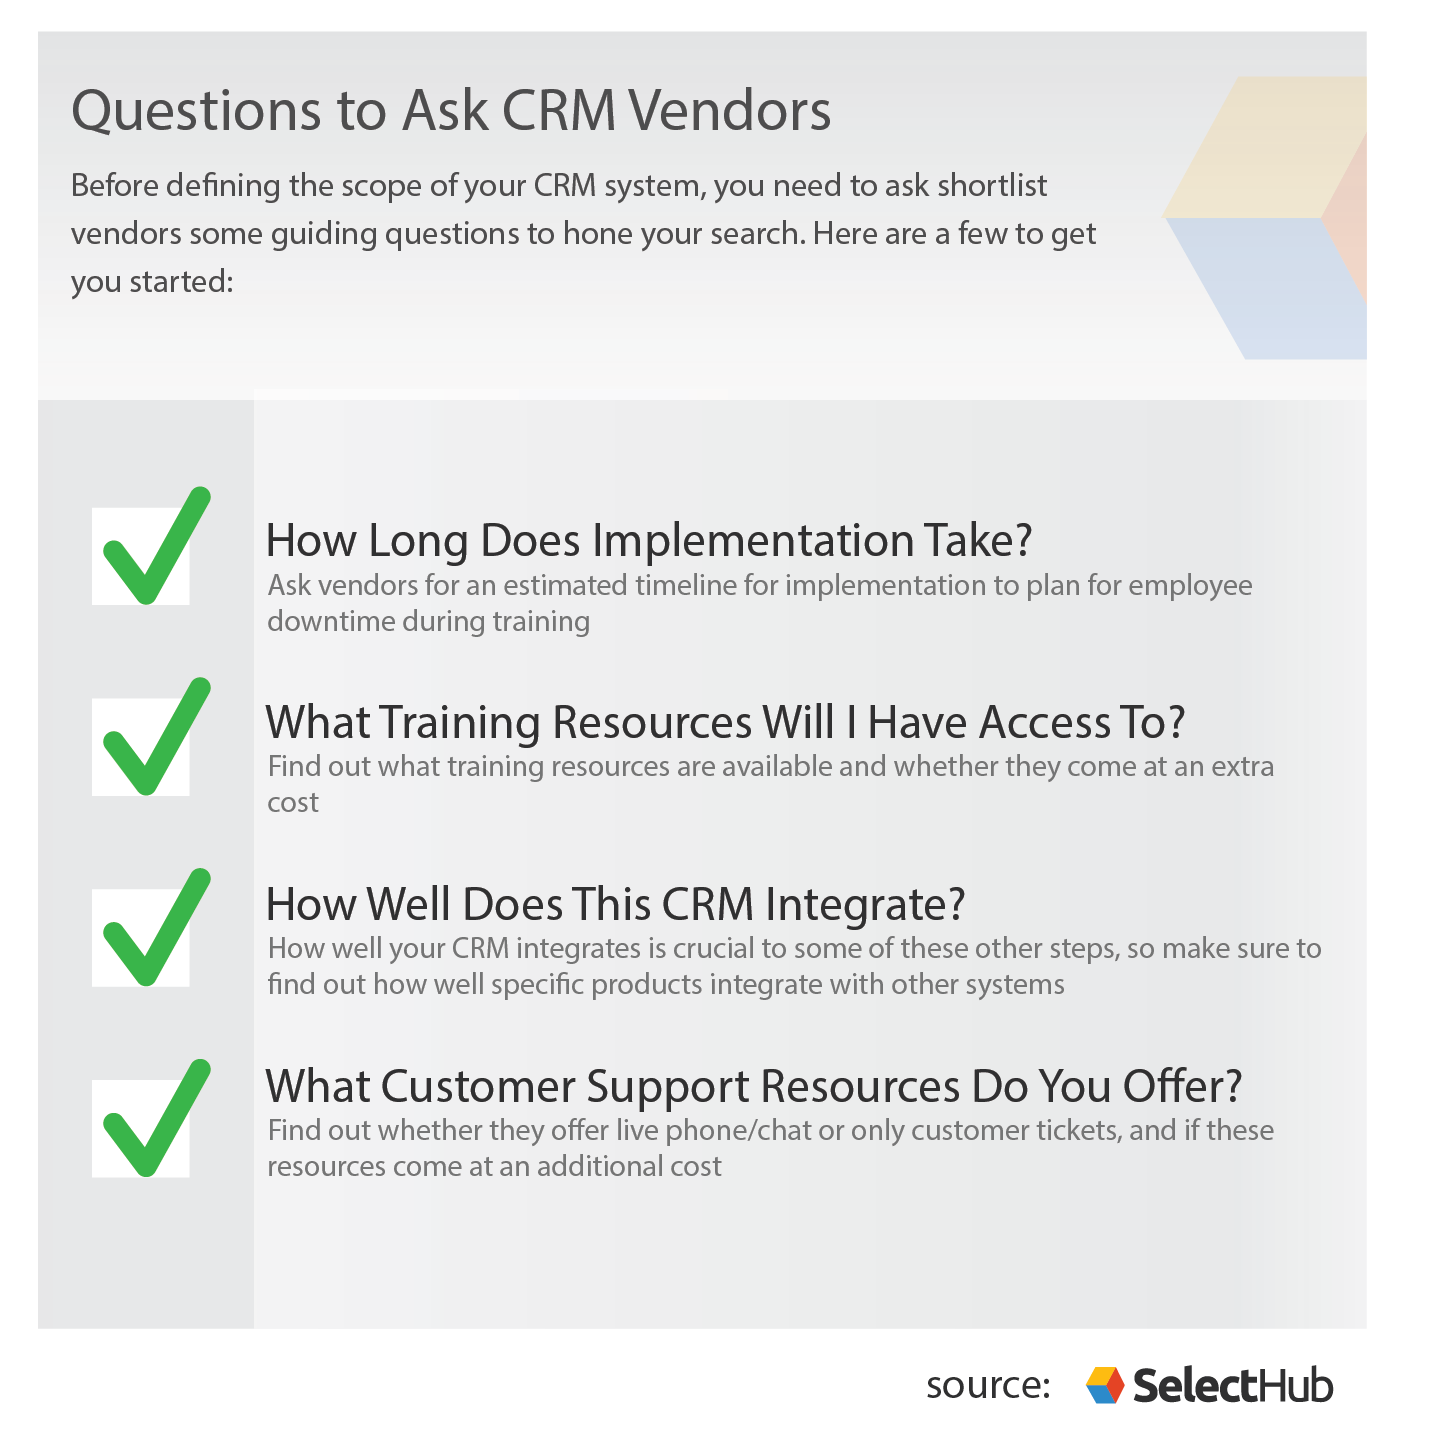 Questions for CRM Vendors